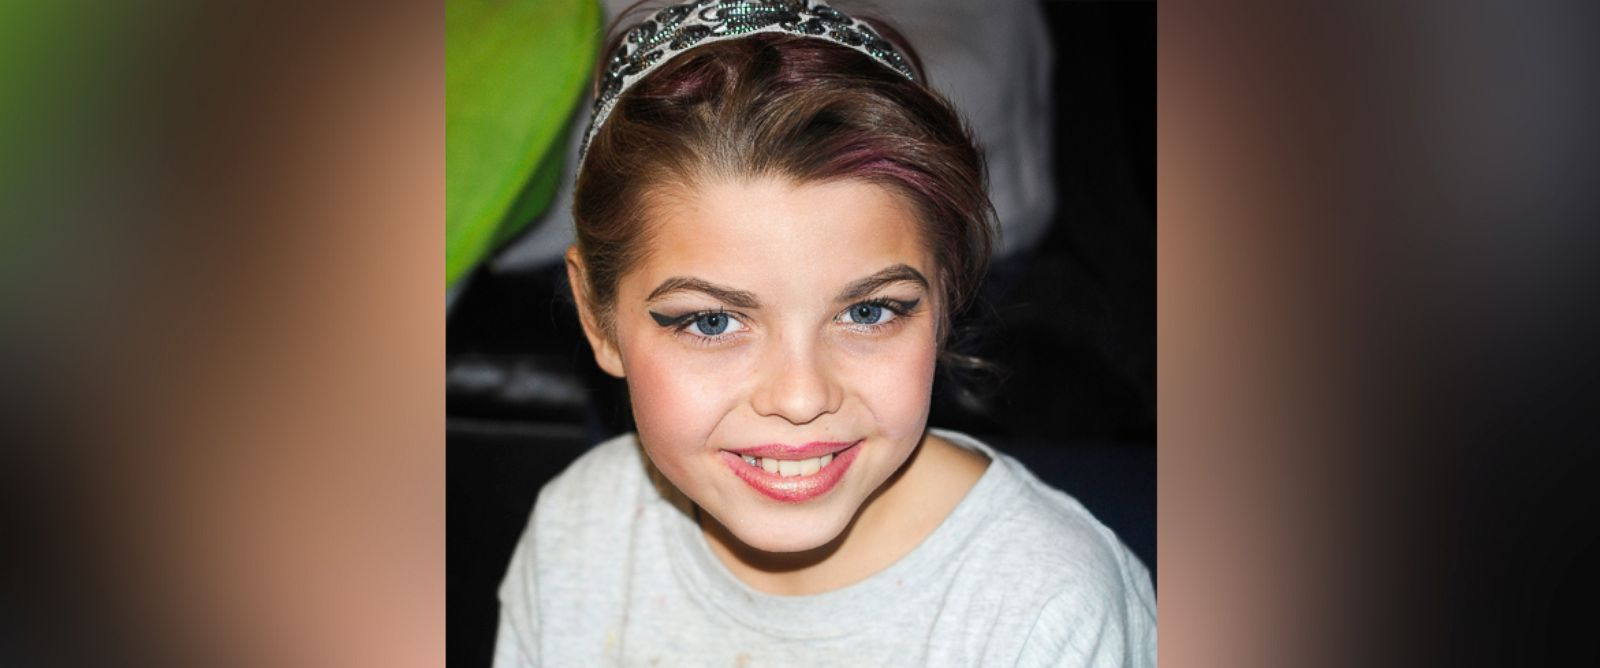 PHOTO: Corey Maison, 14, is a transgender female that was assigned male sex at birth.